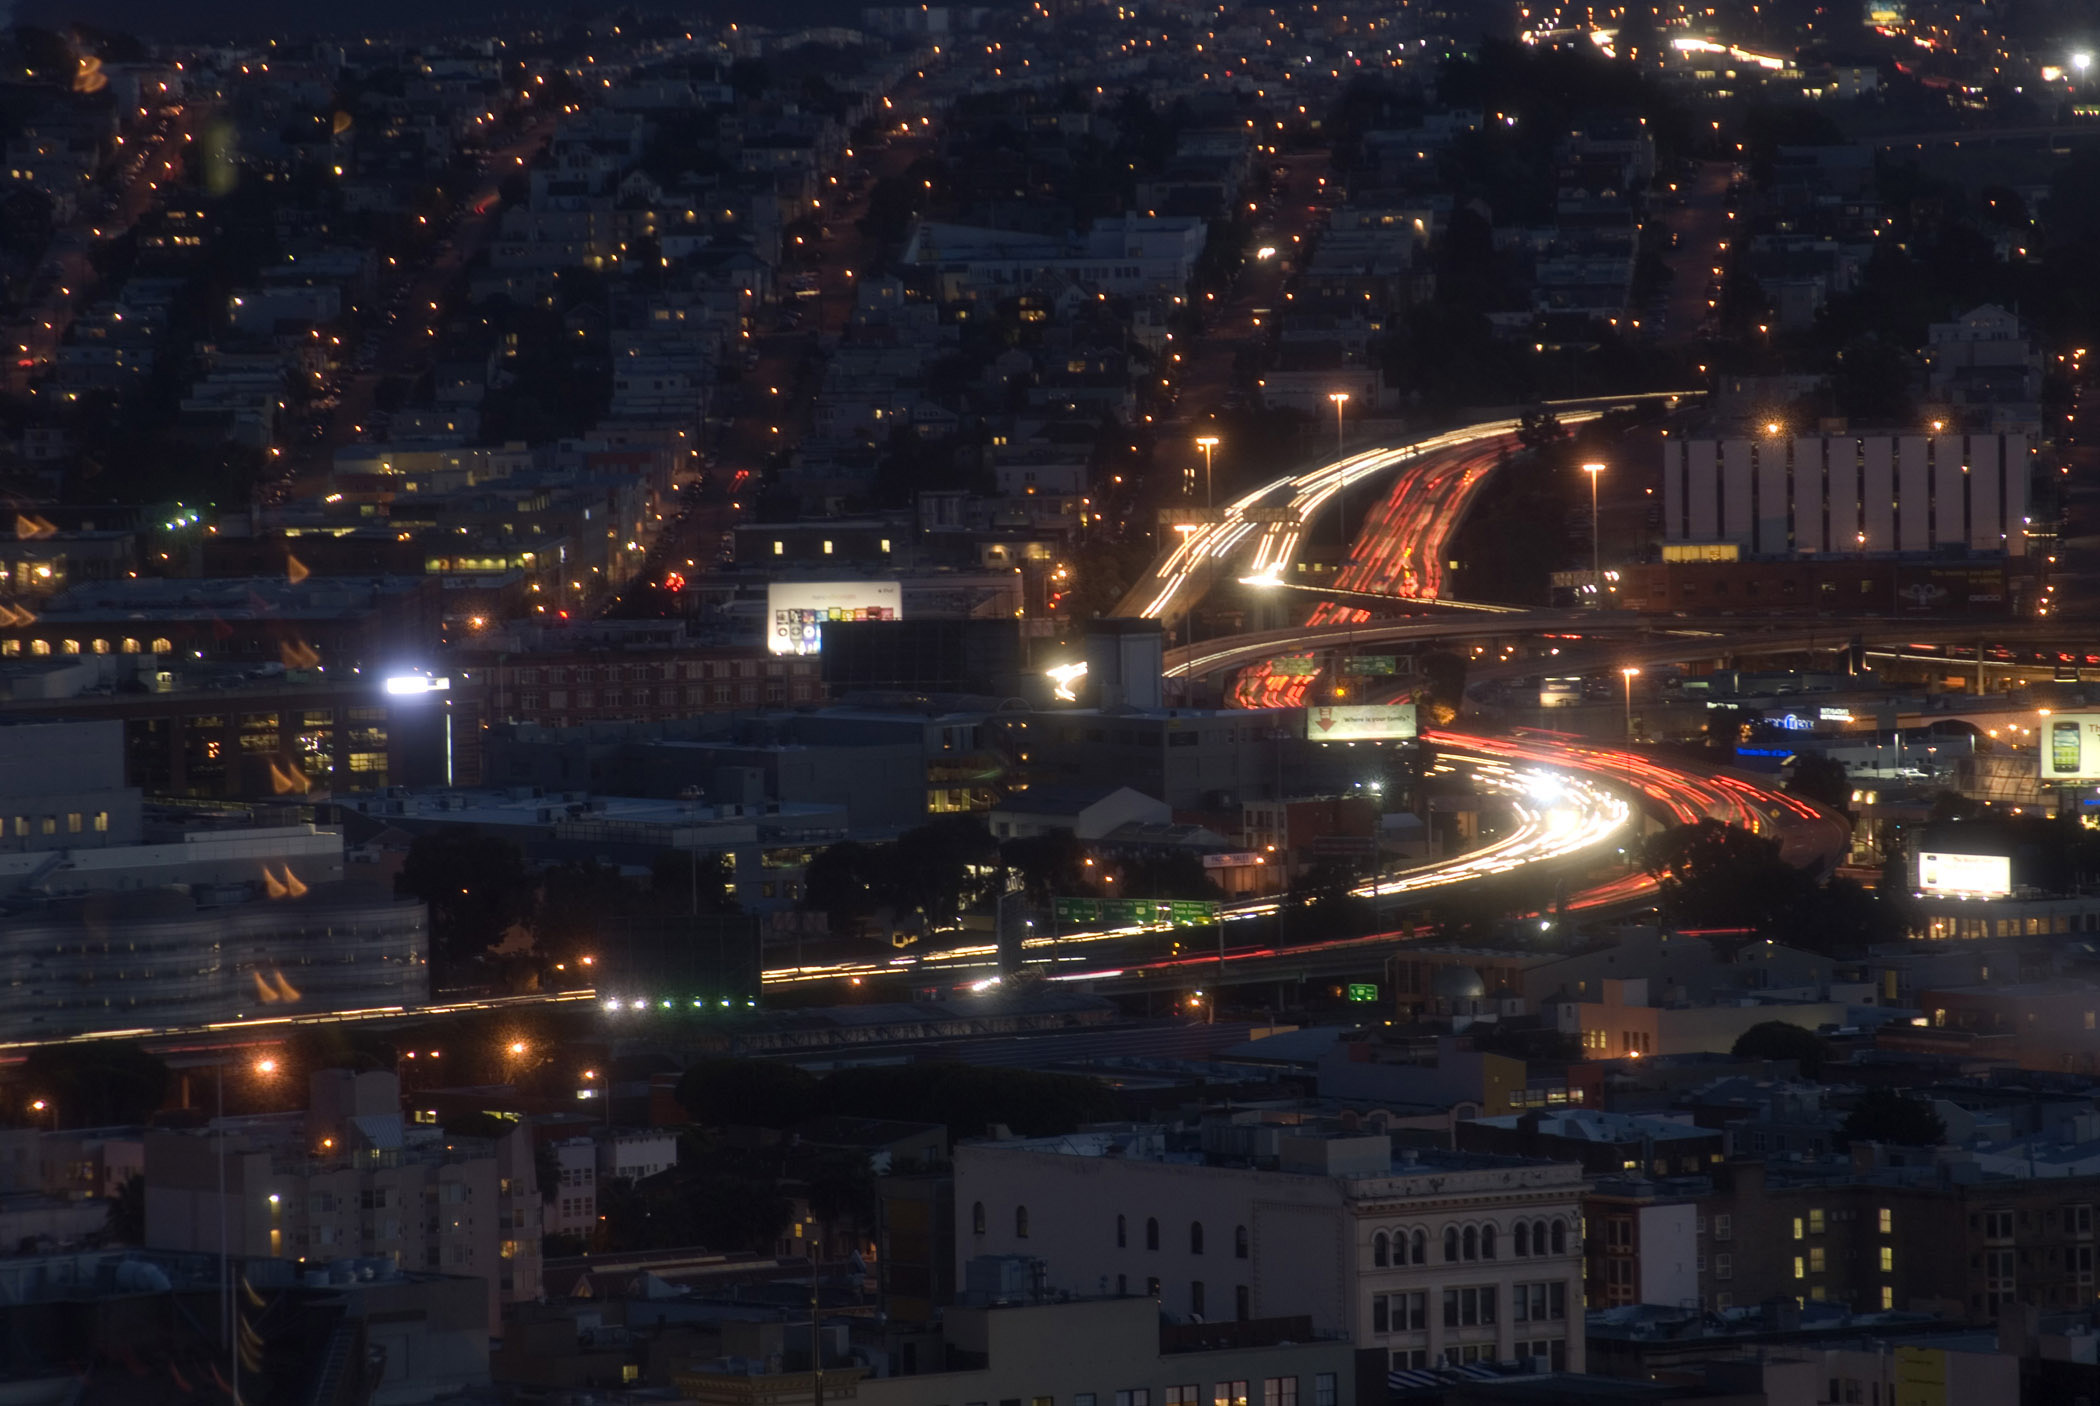 Long exposure of moving traffic on a freeway at night curving through a town lighting up the darkness